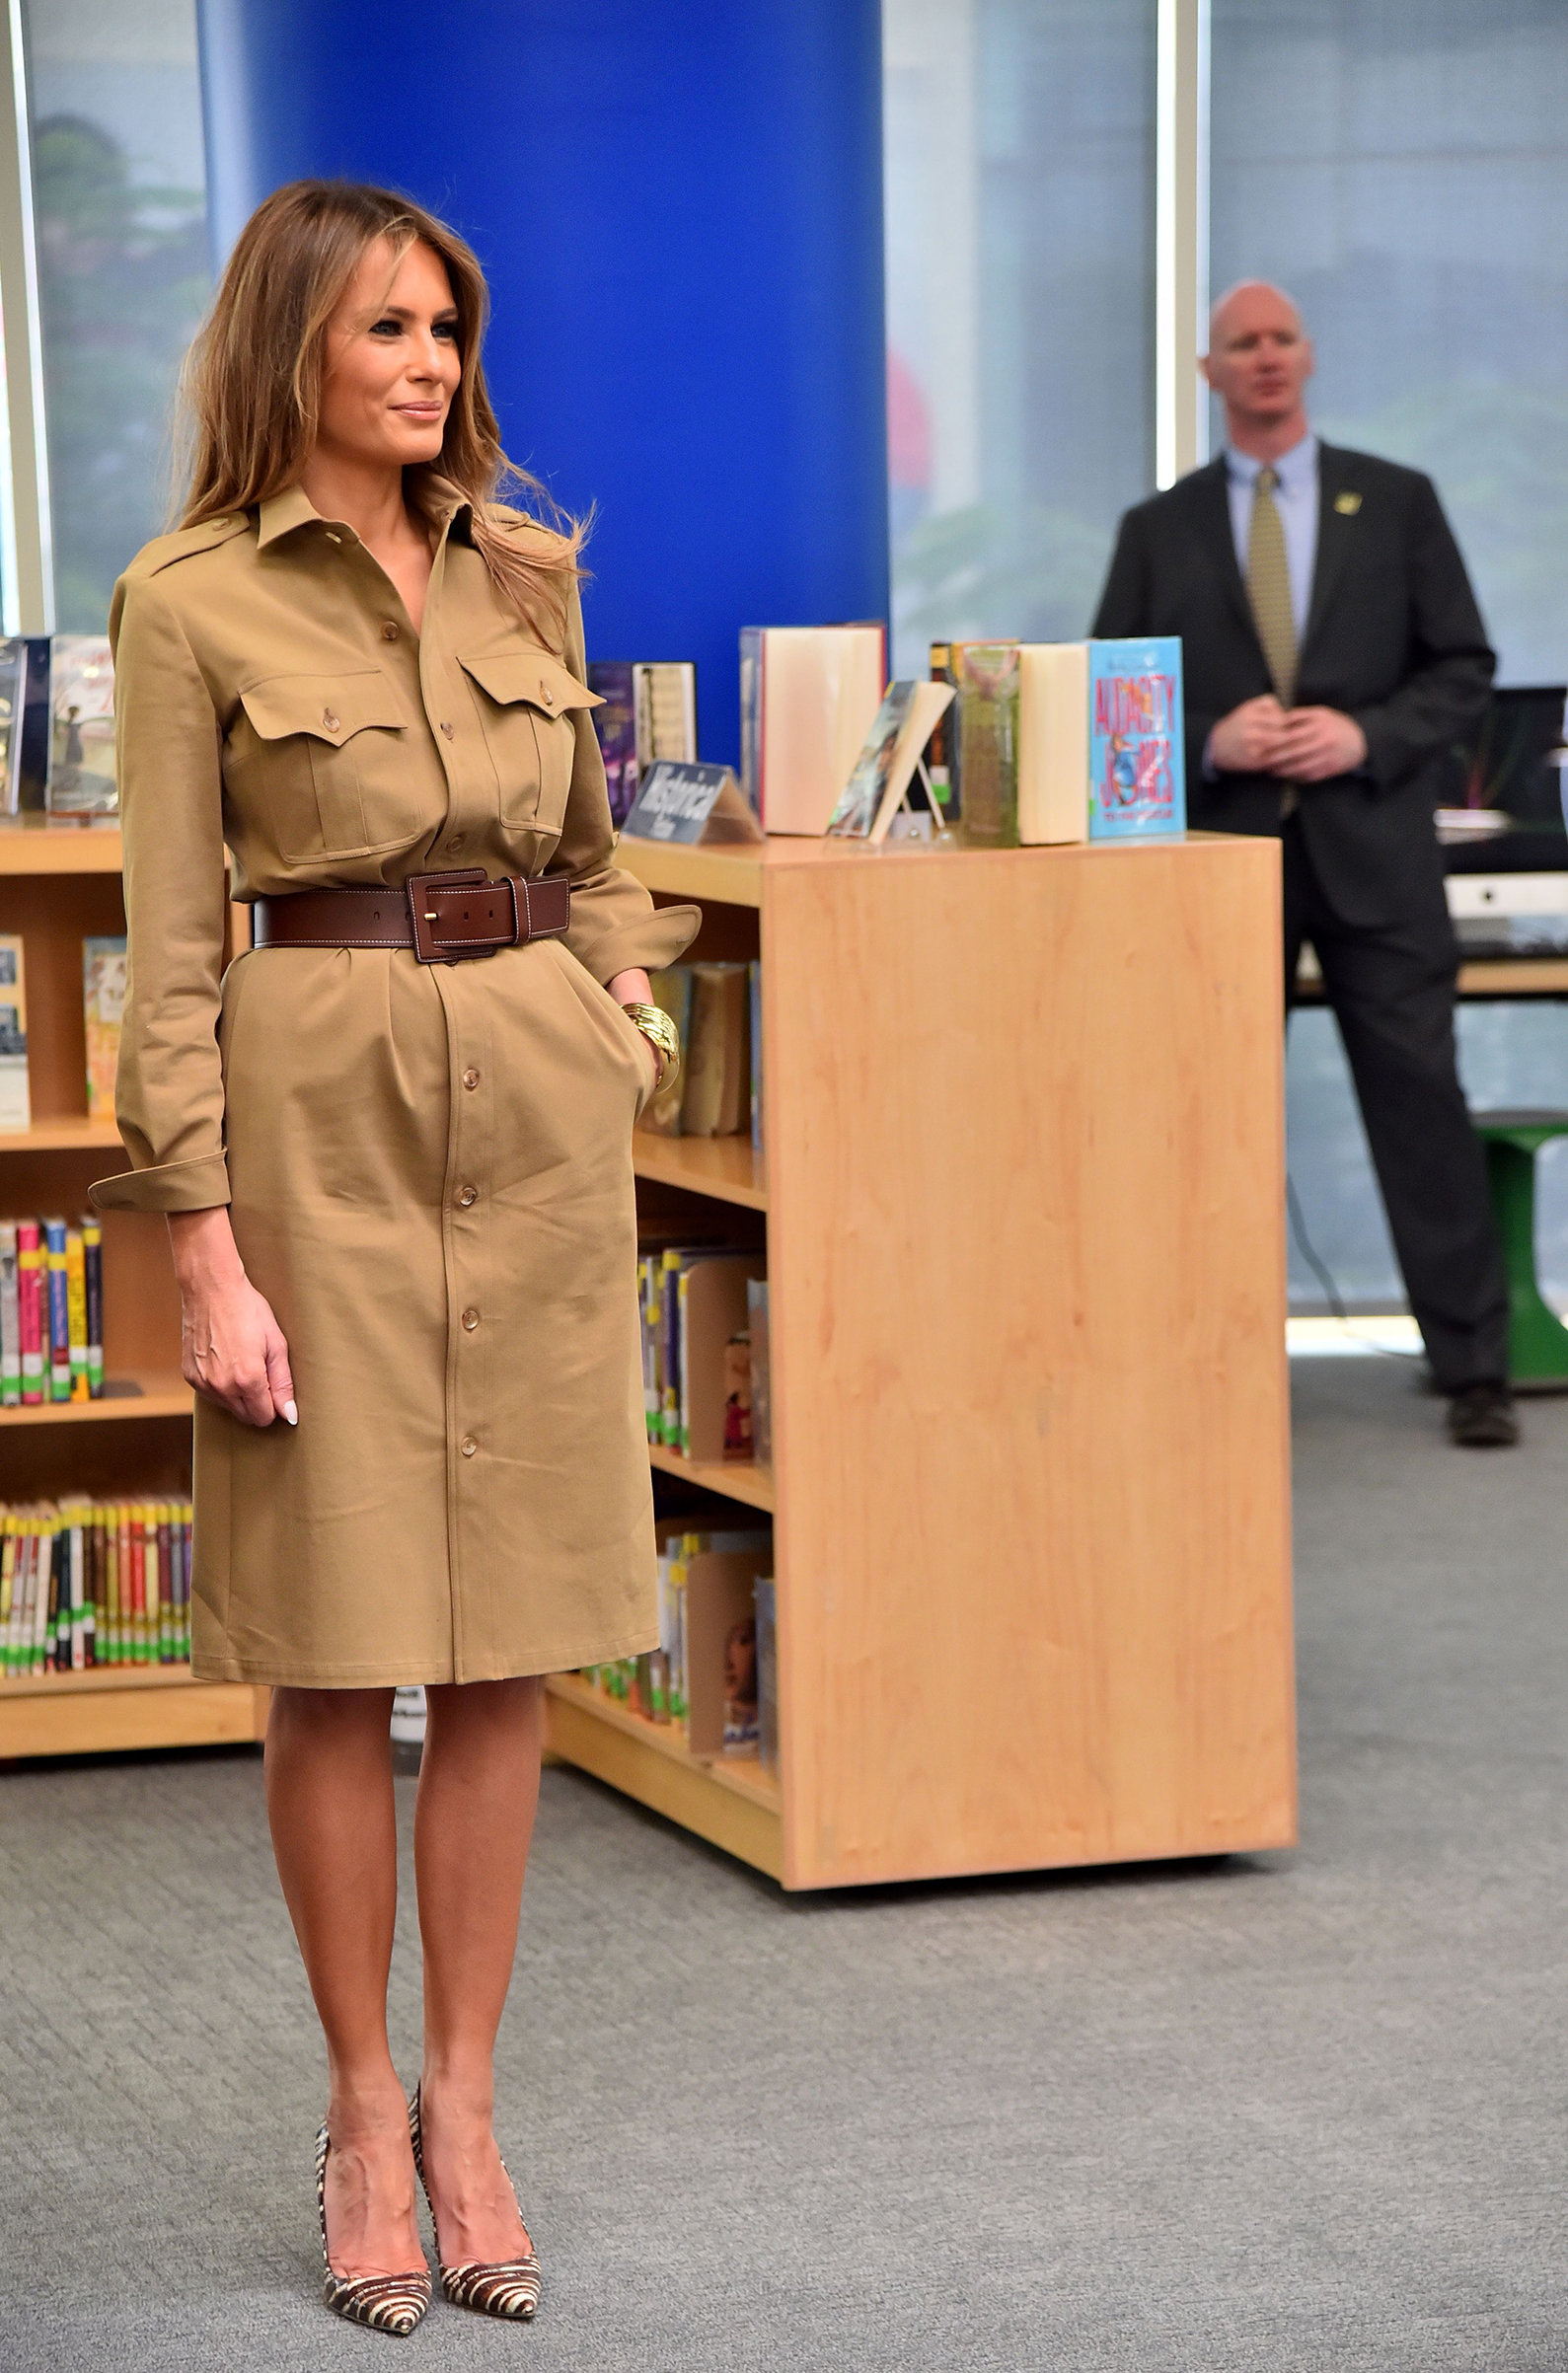 First lady Melania Trump wearing a Ralph Lauren Collection shirtdress, visits the American International School in the Saudi capital Riyadh on May 21, 2017.